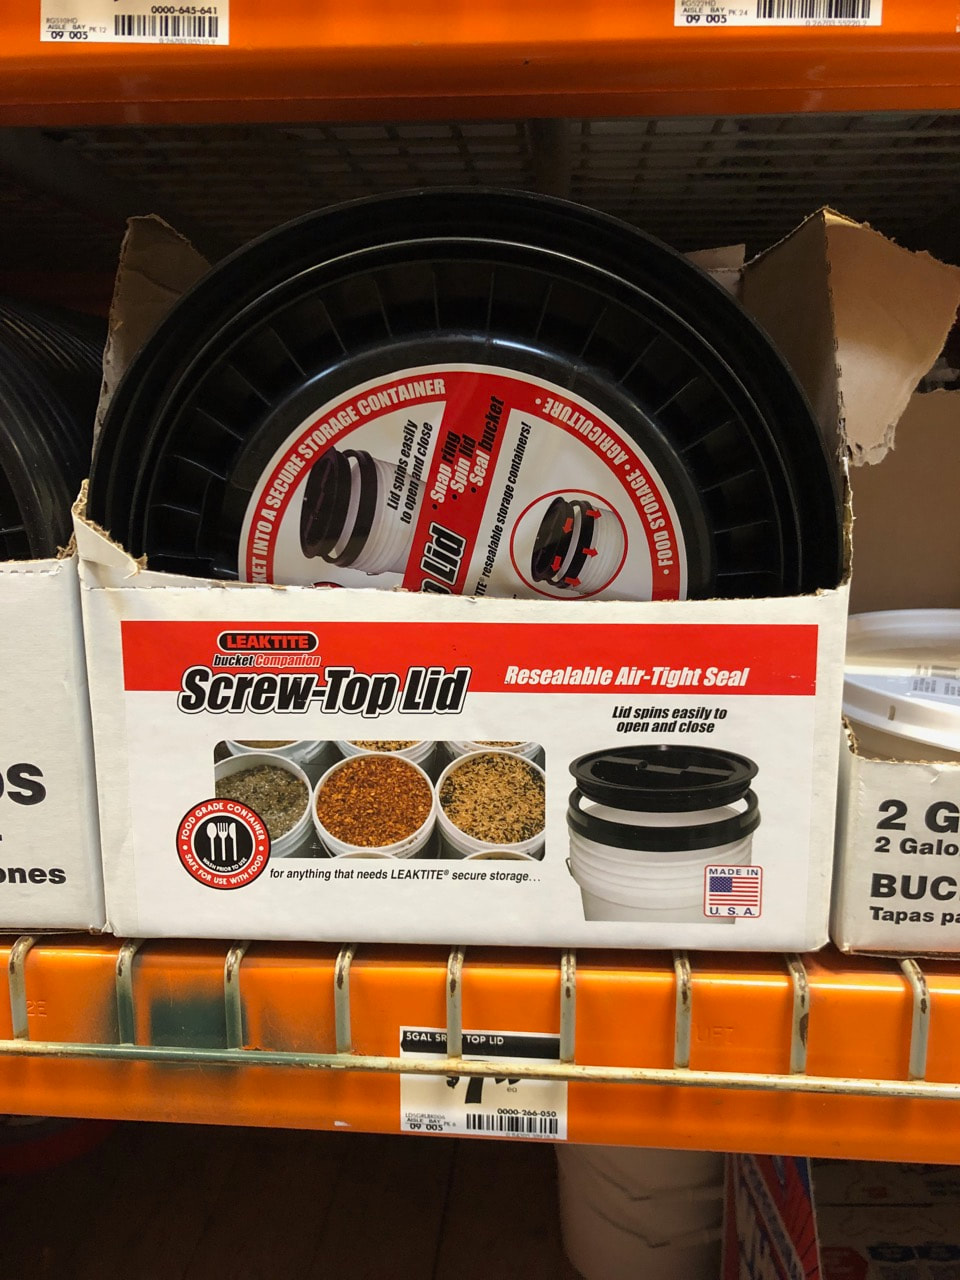 You'll need one of the screw top lids for your five gallon bucket.